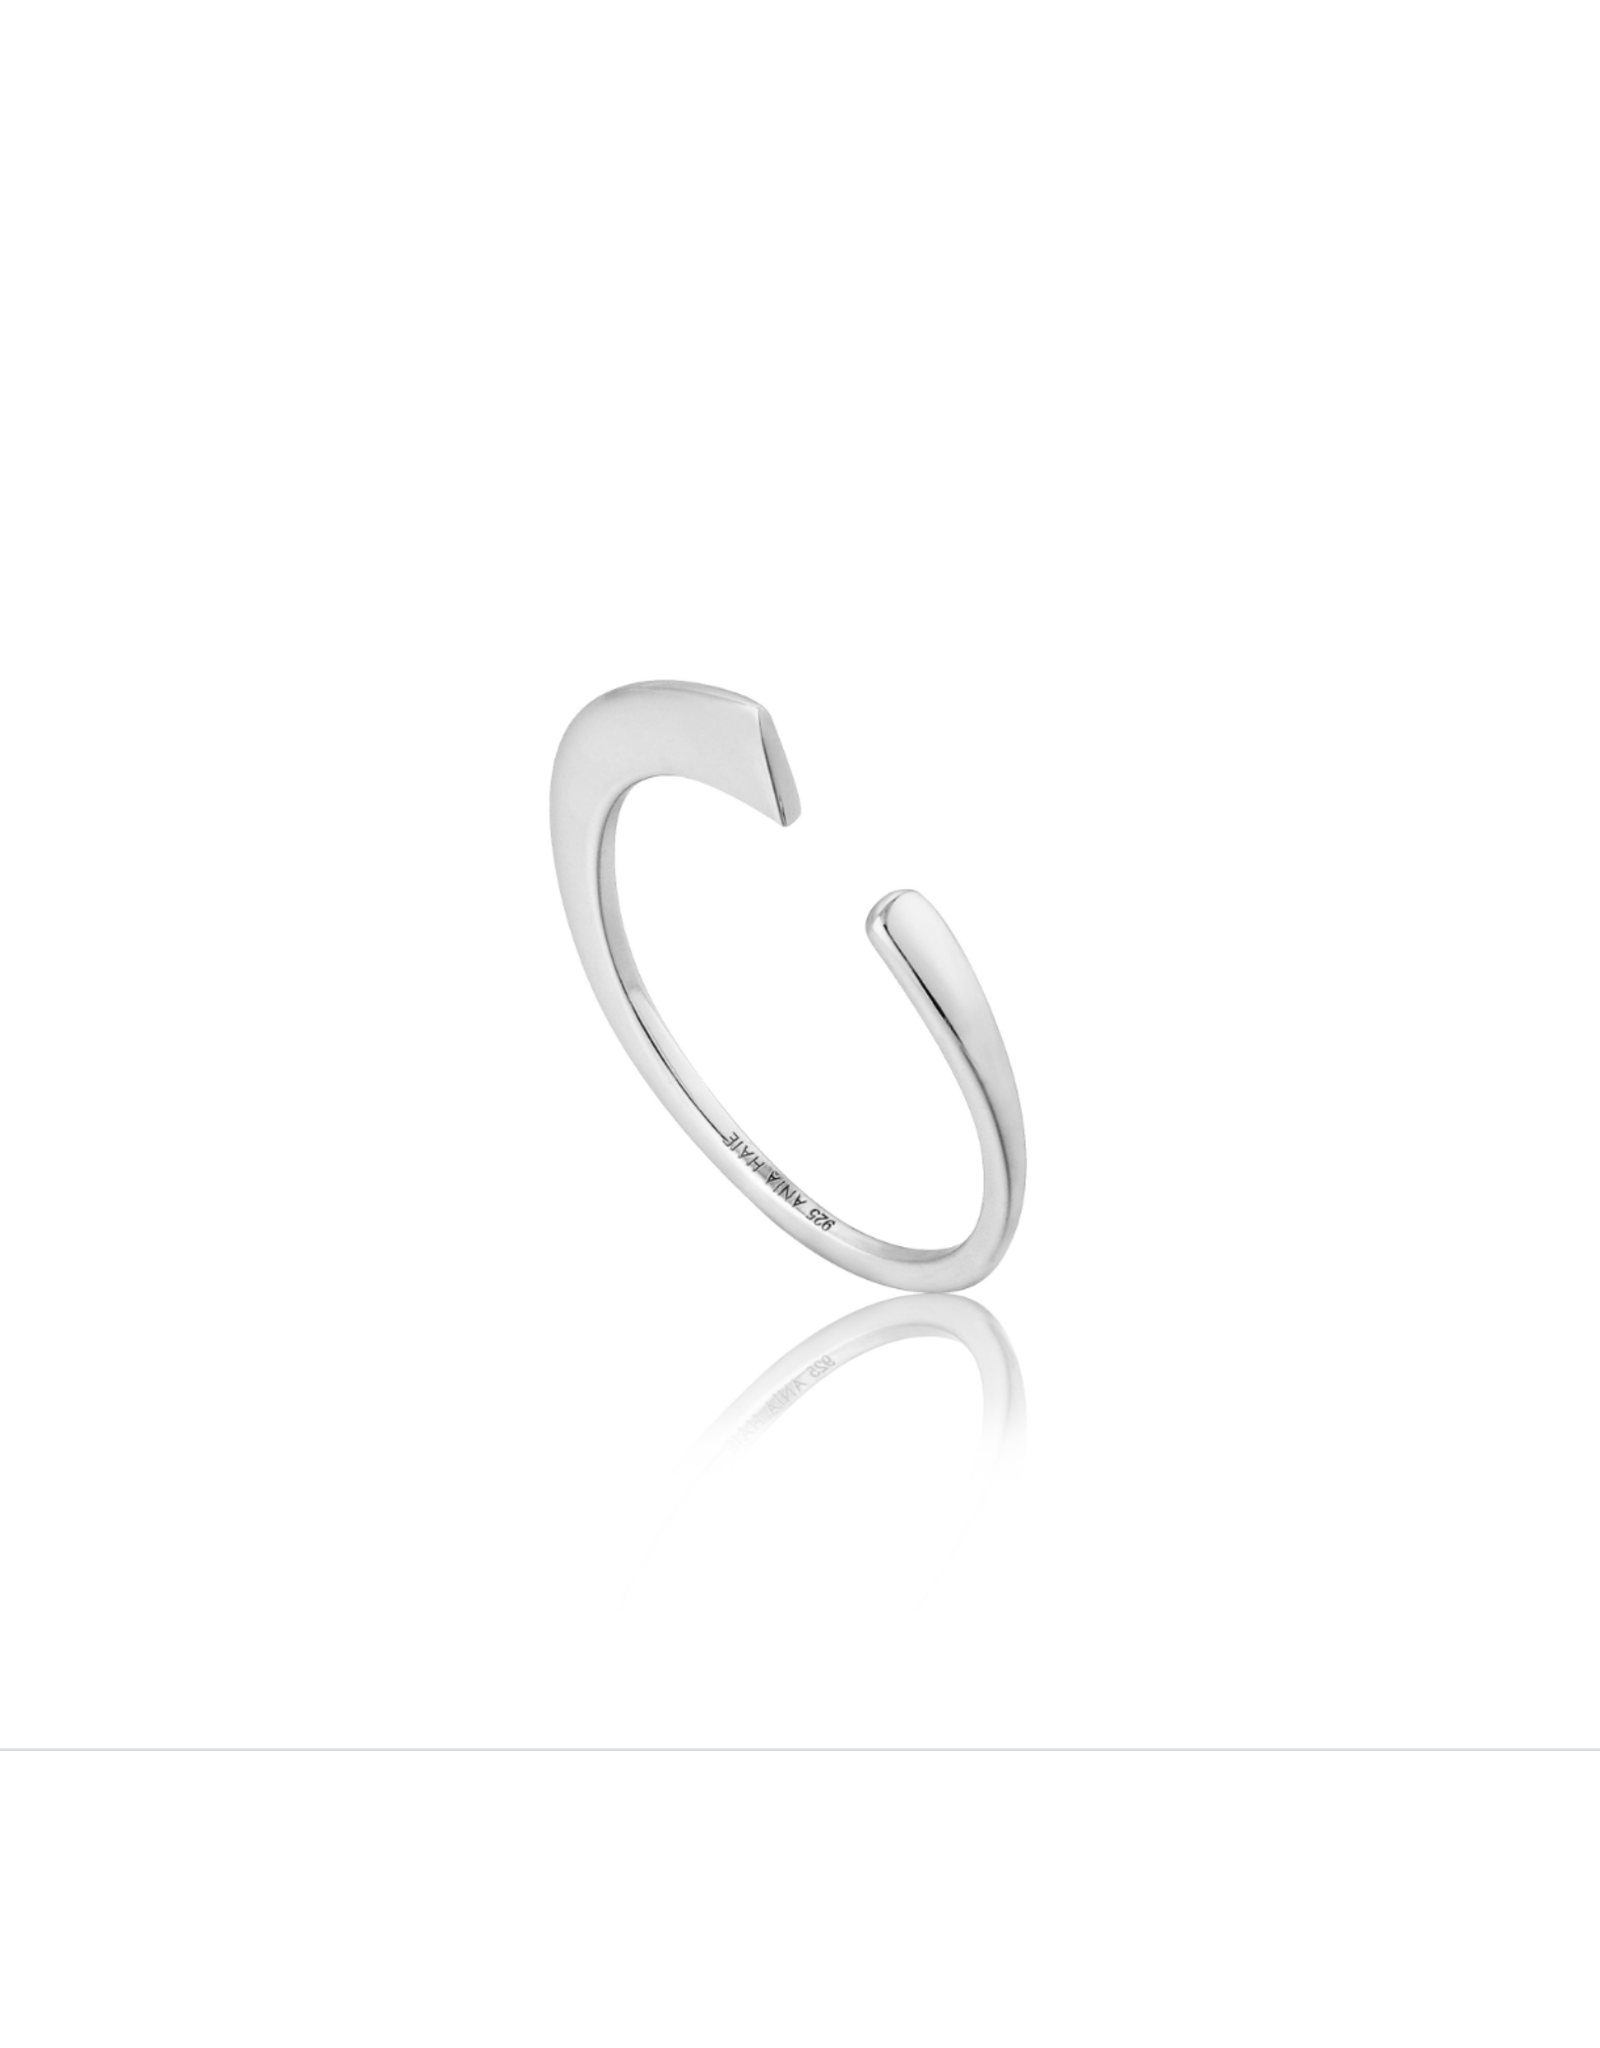 Geometry Curved Adjustable Ring, silver